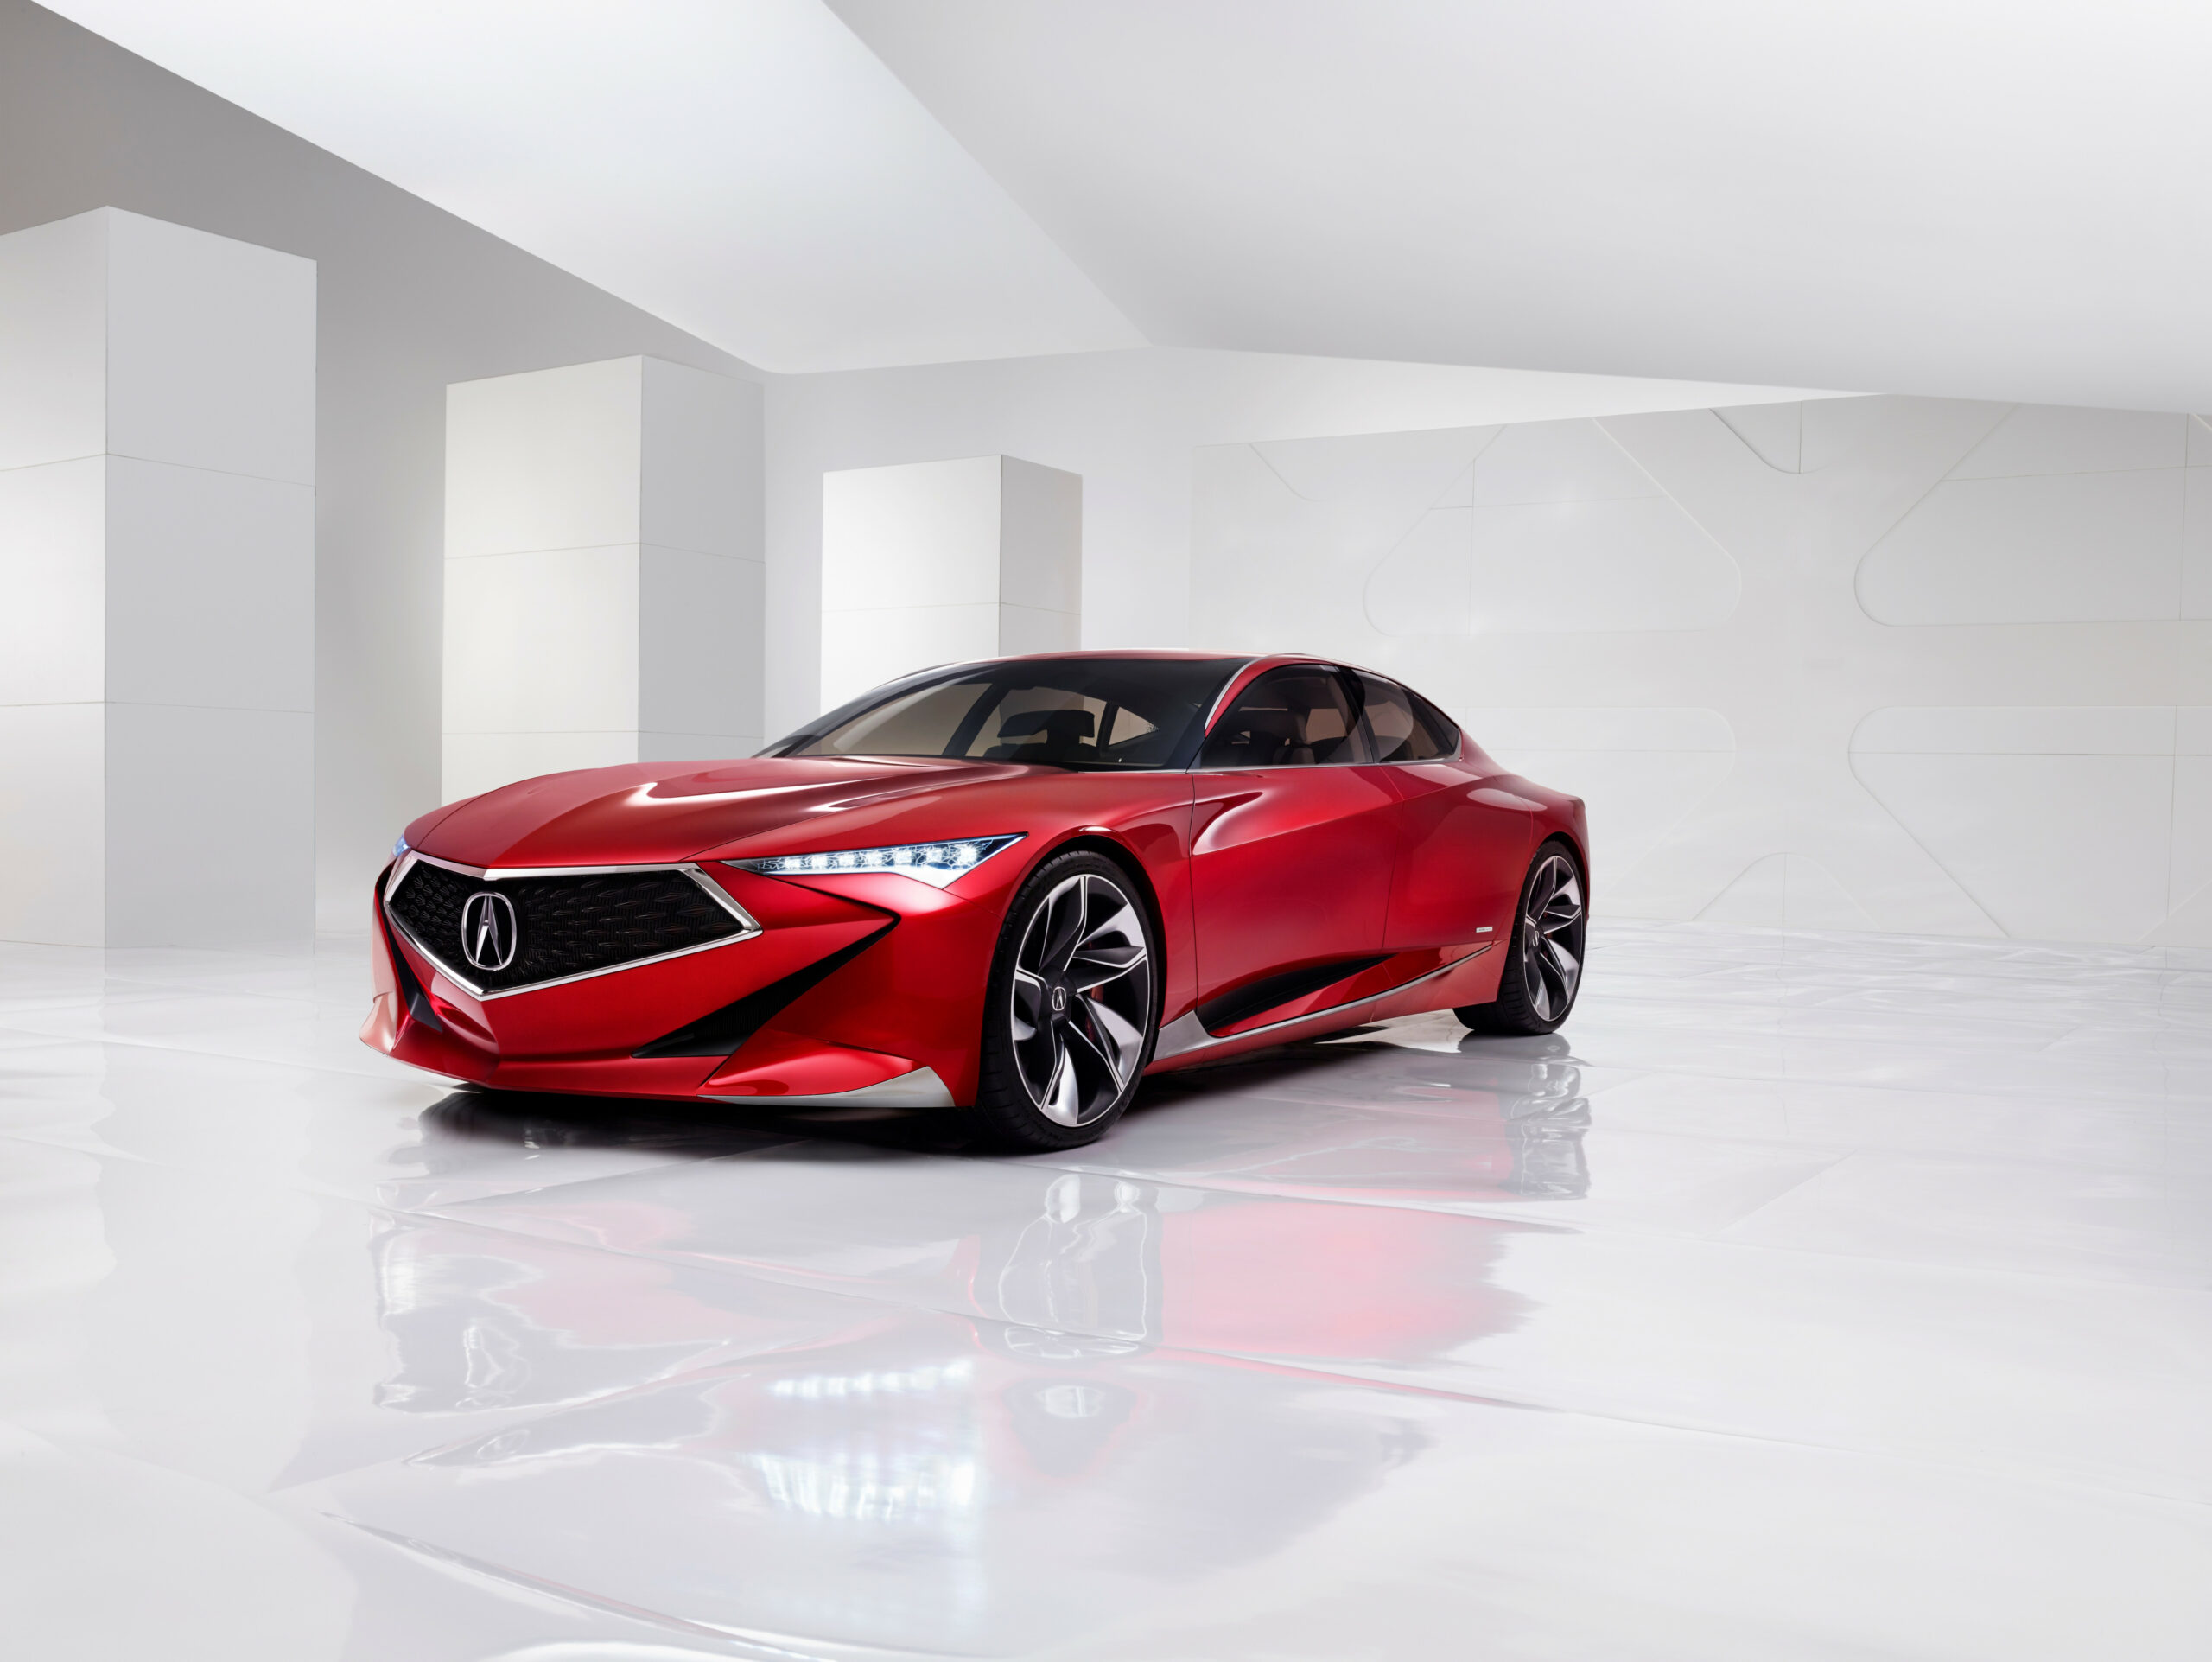 8 Acura Precision Concept News and Information, Research, and ..